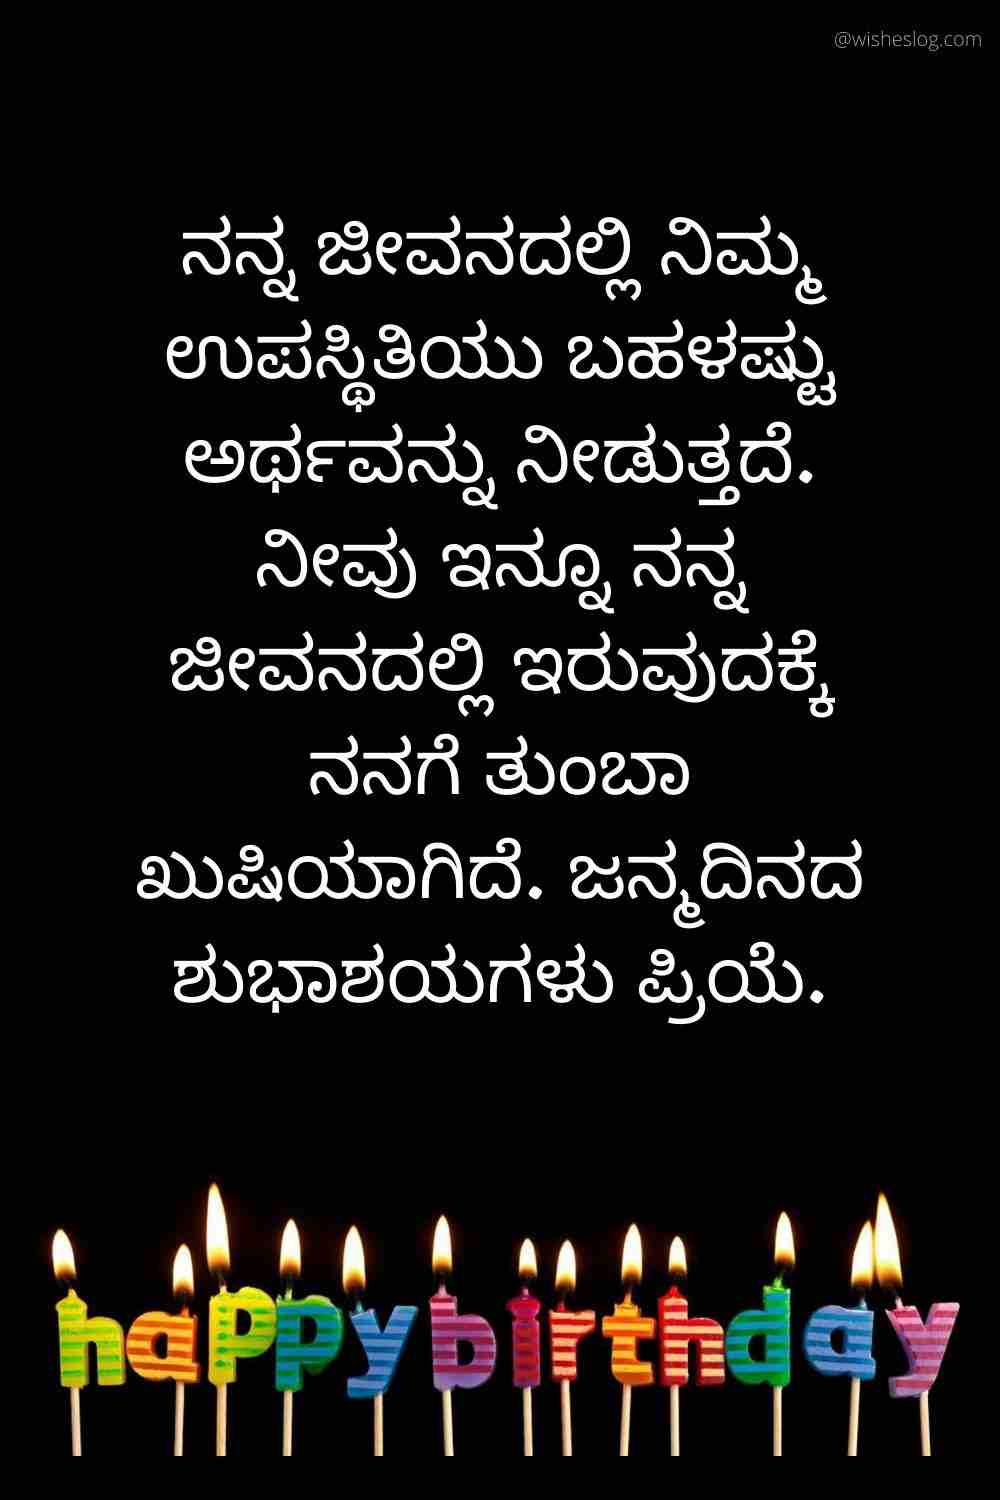 happy birthday quotes for friend in kannada